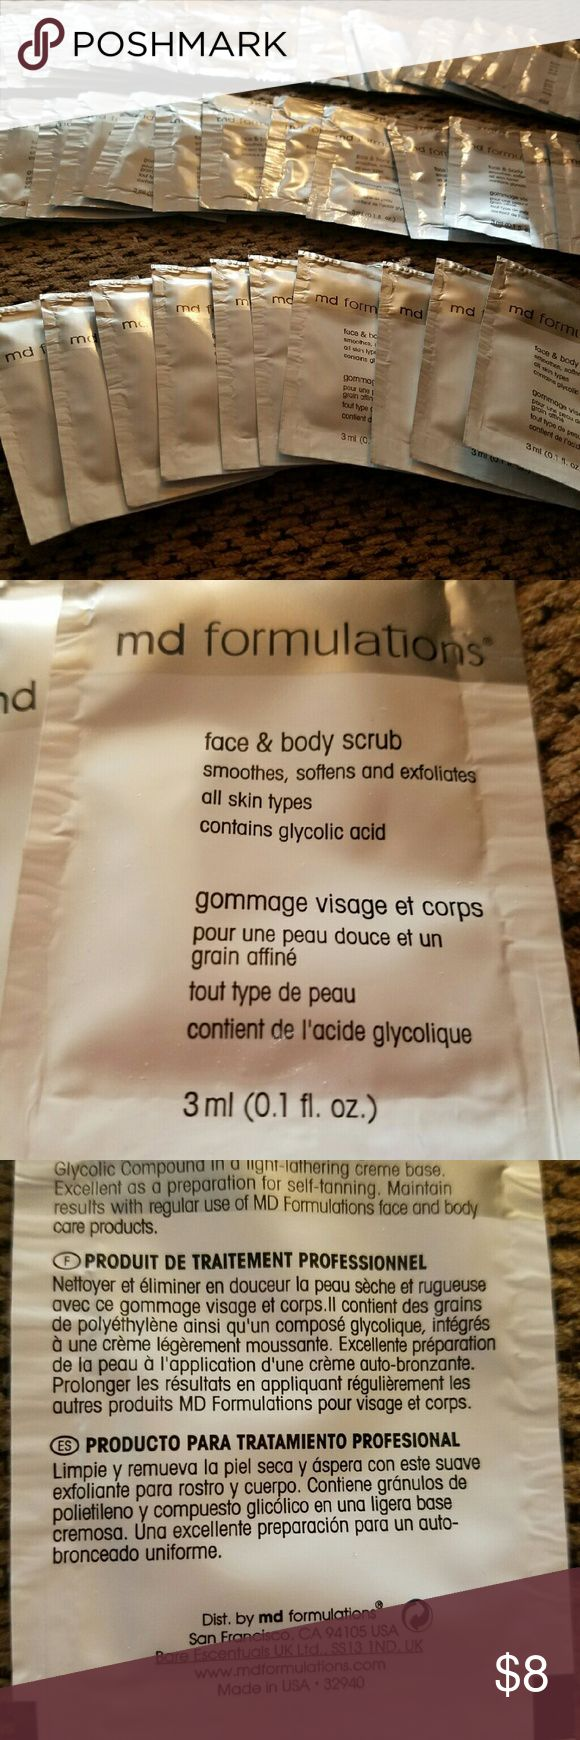 Bare Escentuals MD Formulations Face Scrub 60 pack MD Formulations Face & Body Scrub. There are 60 sealed, single use packets. Smoothes, softens, and exfoliates all skin types. Contains glycolic acid. Bare Escentuals Makeup Brushes & Tools